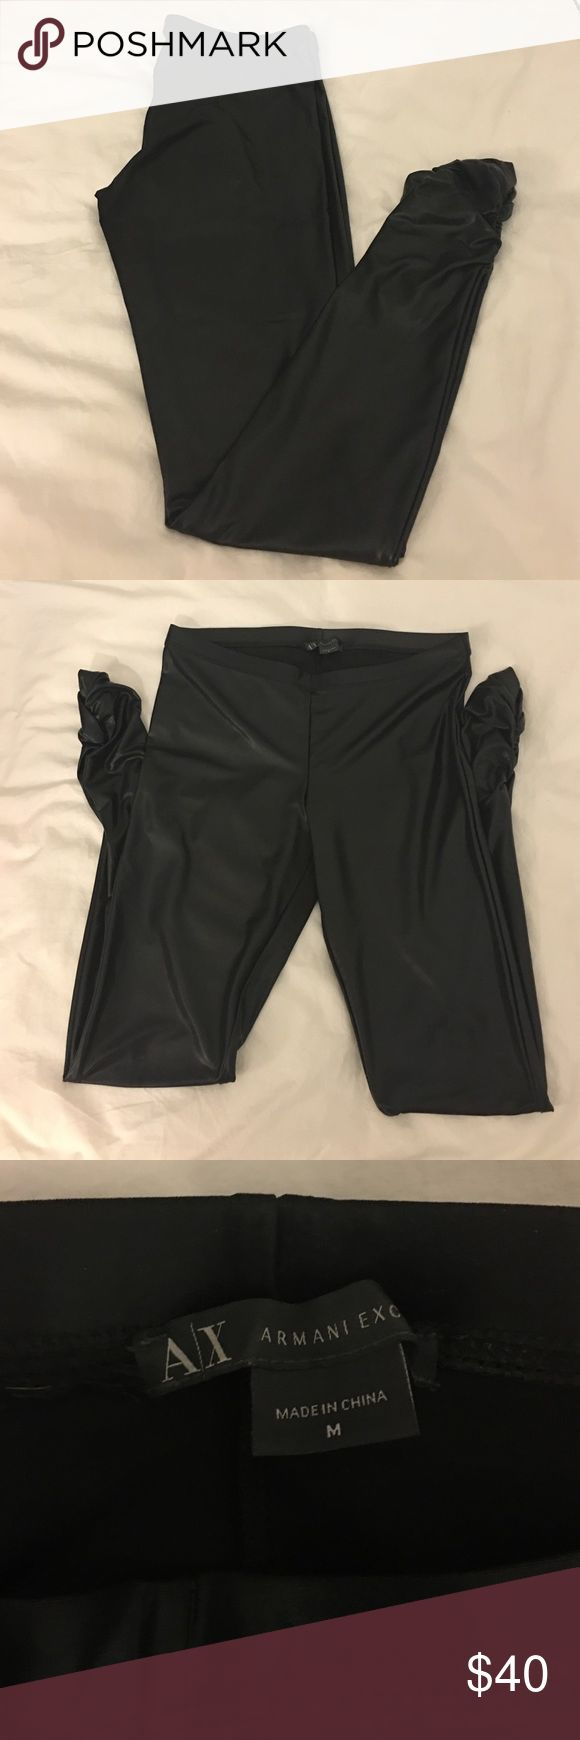 👑 A|X Armani Exchange Liquid Latex Leggings Gorgeous low rise with ruched ankles.  Worn once.  Upgraded to real leather pair. Armani Exchange Pants Leggings